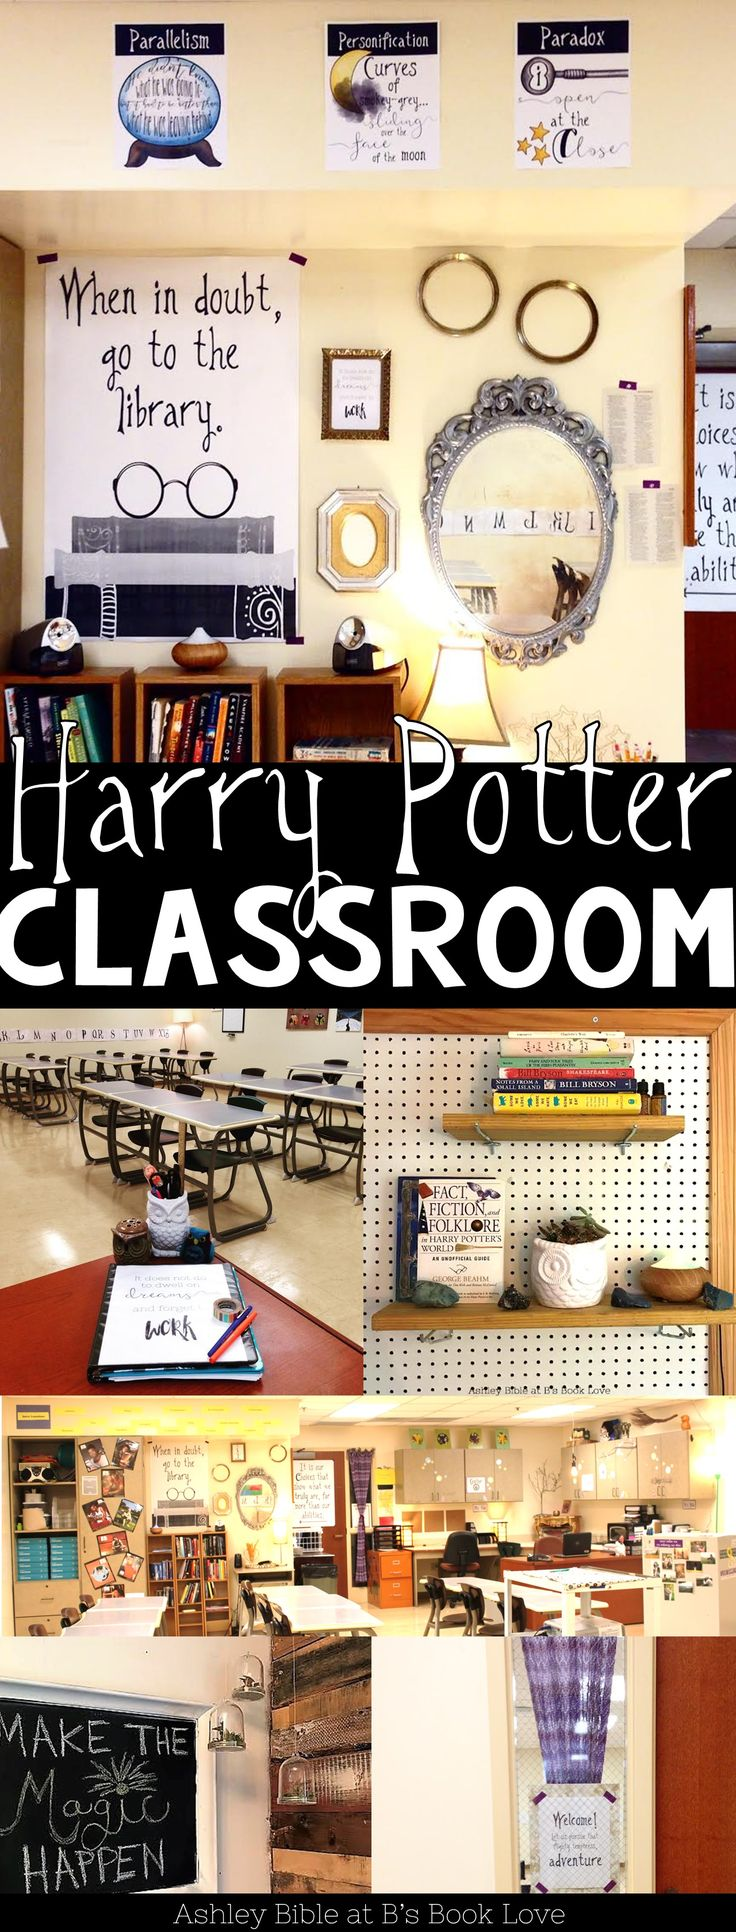 Harry Potter Classroom Inspiration, Harry Potter posters, Harry Potter decorations